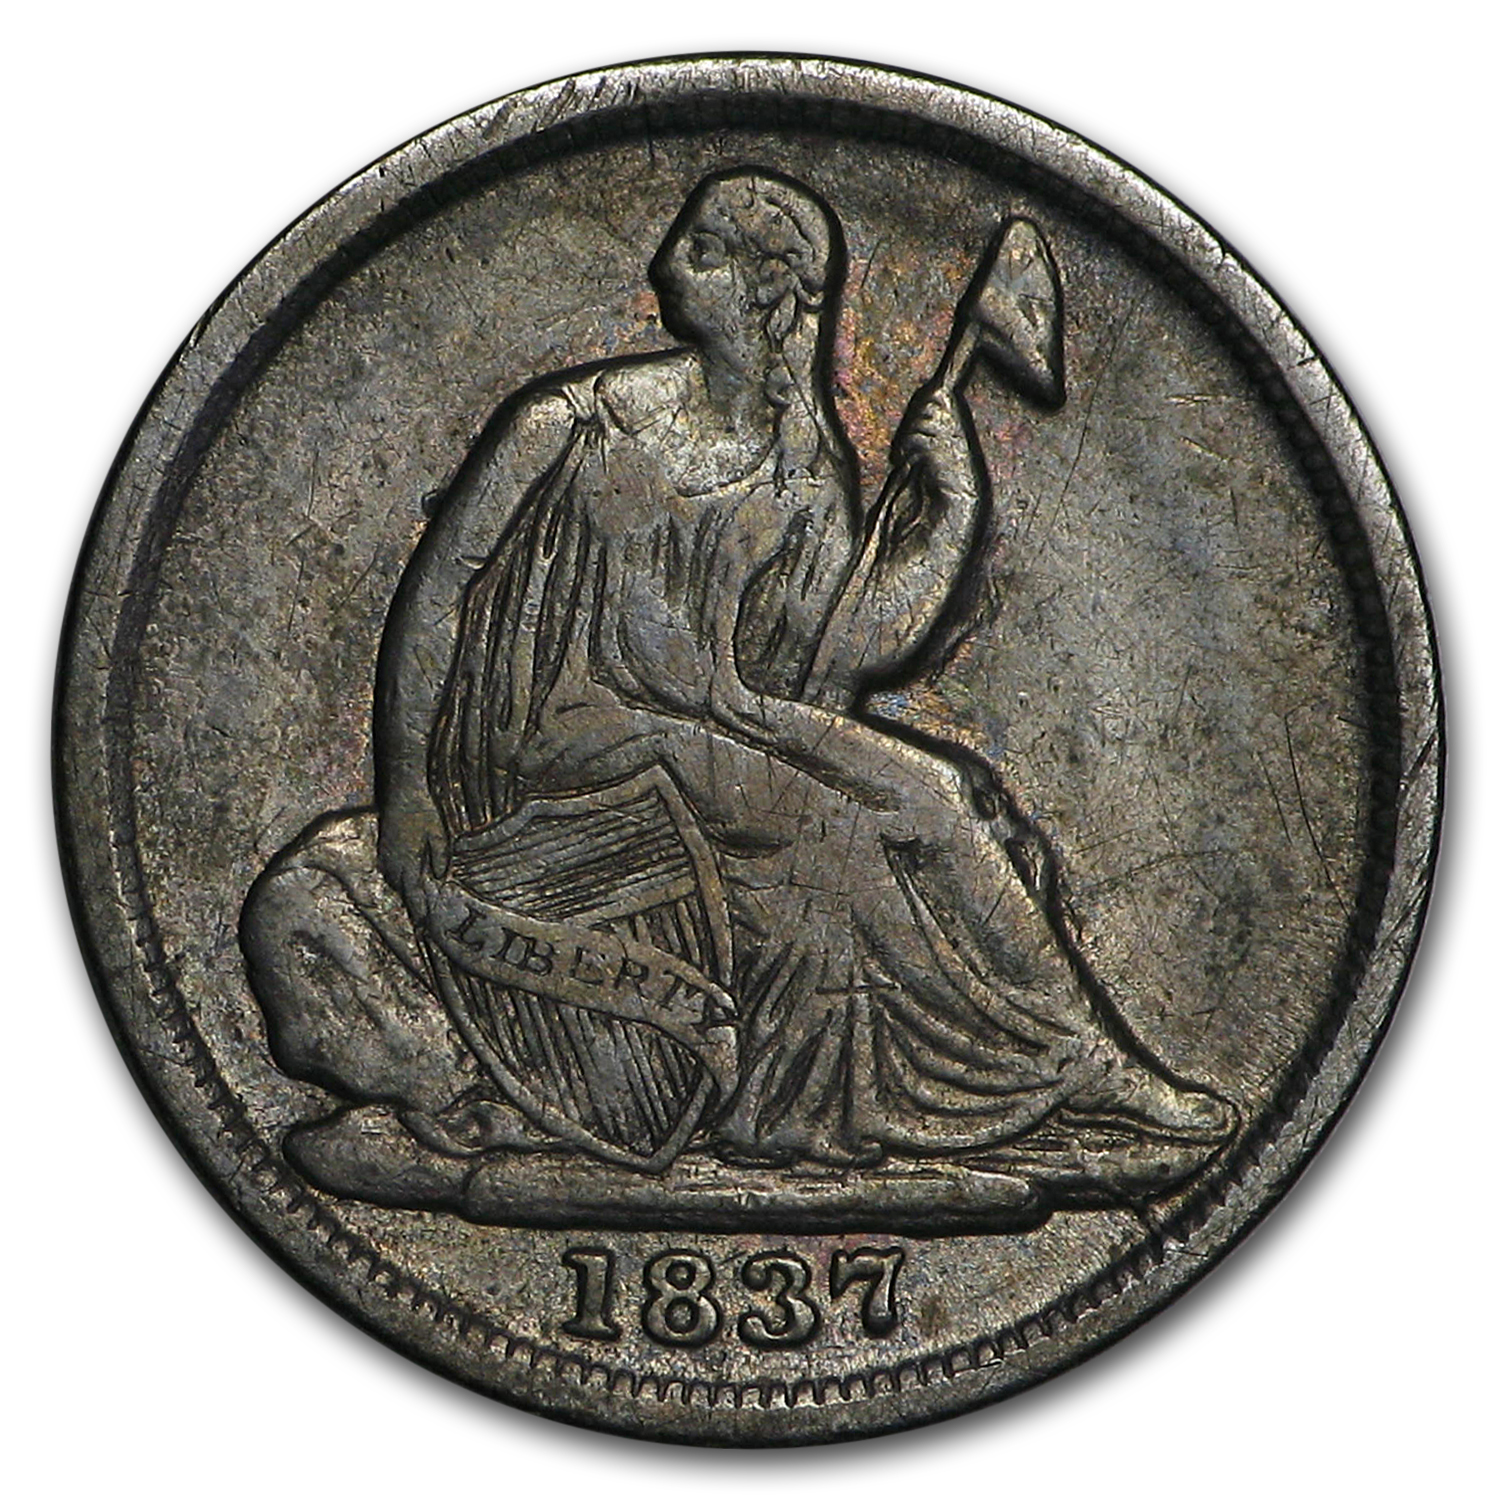 1837 Liberty Seated Half Dime Large Date XF